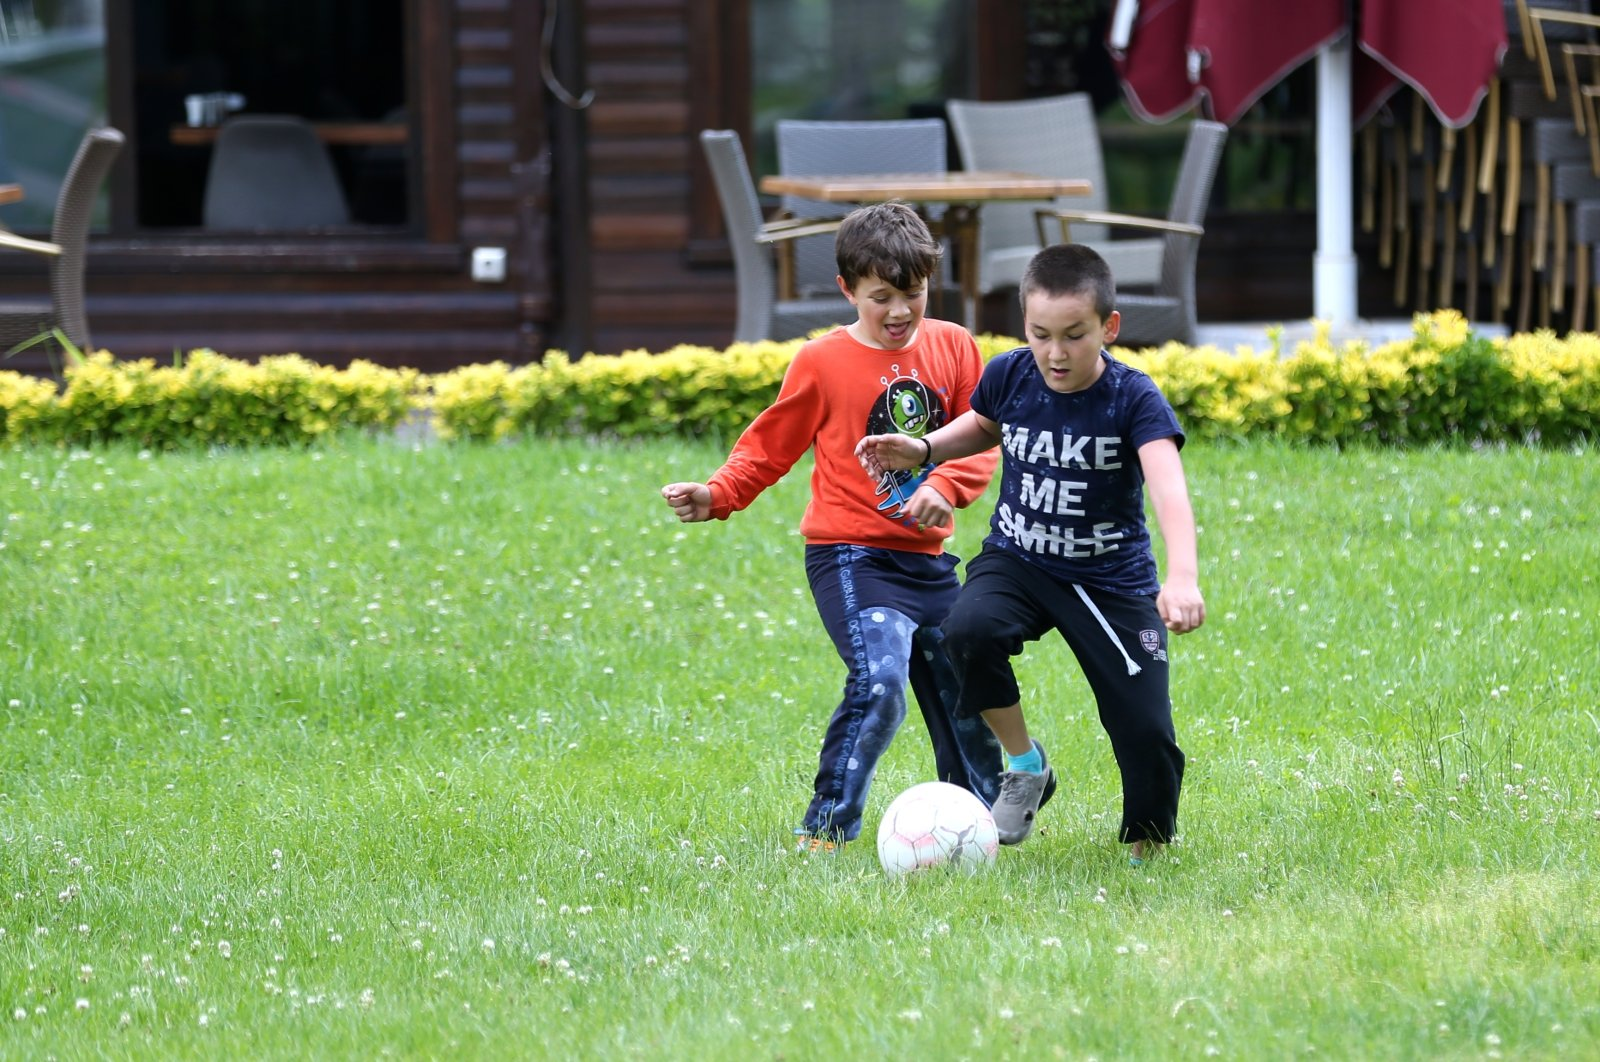 Two boys play football in a yard in Sakarya, northwestern Turkey, June 3, 2020. (AA Photo)